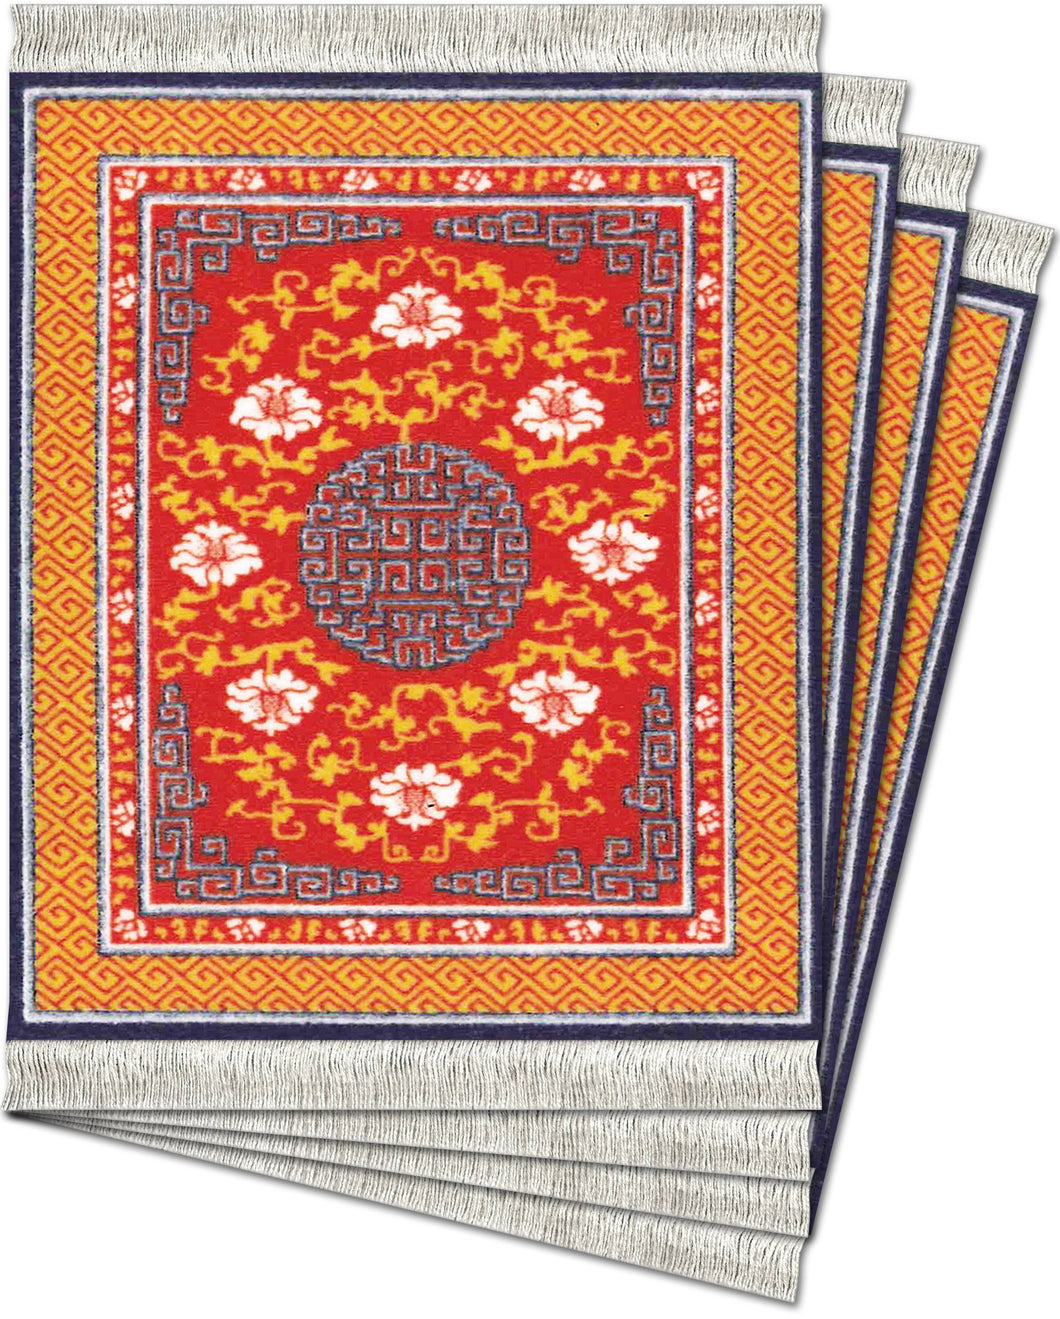 Ningxia Medallion Coaster Rug Set